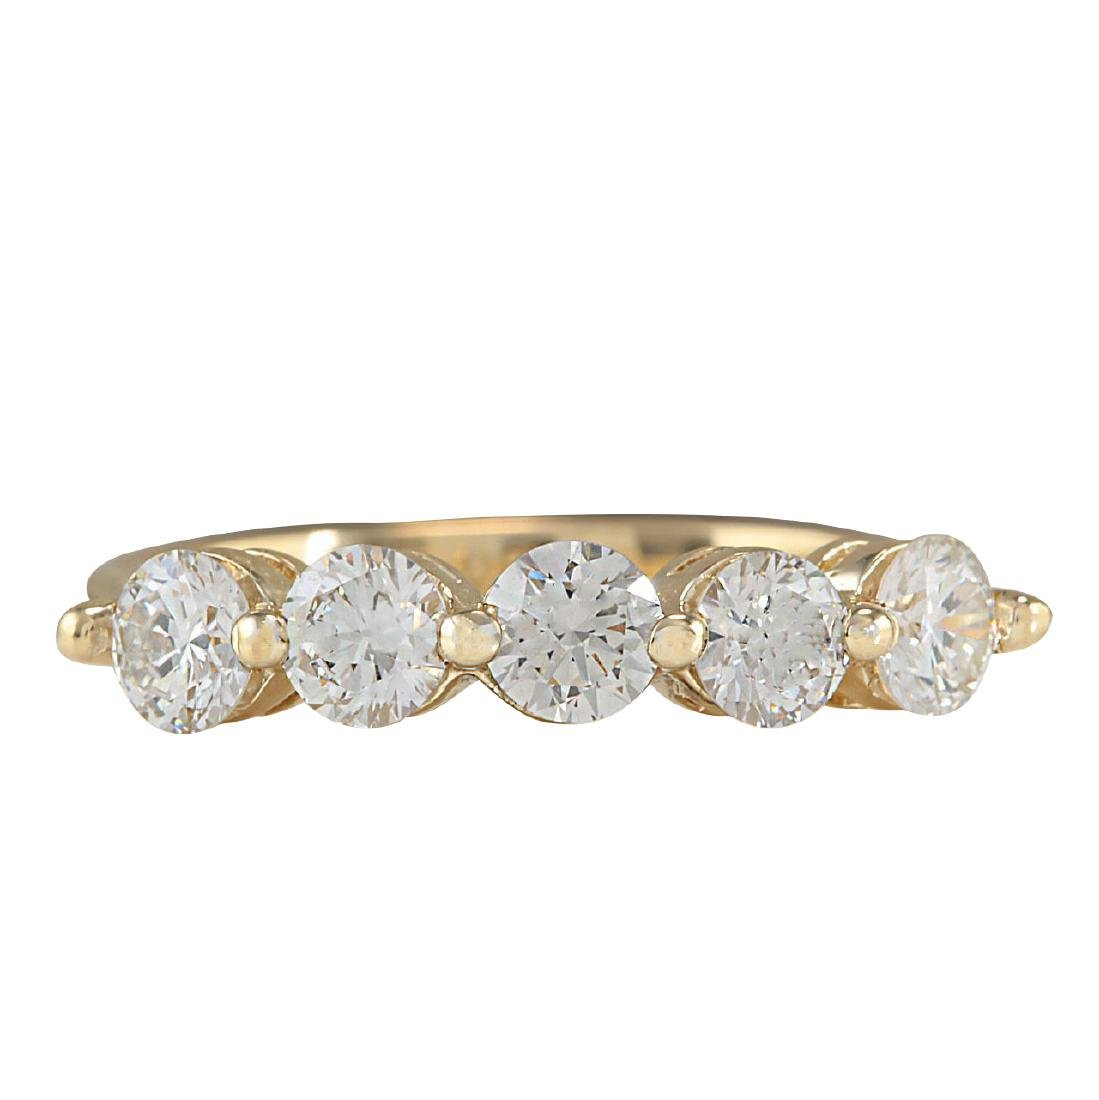 1.00CTW Natural Diamond Ring In 18K Yellow Gold